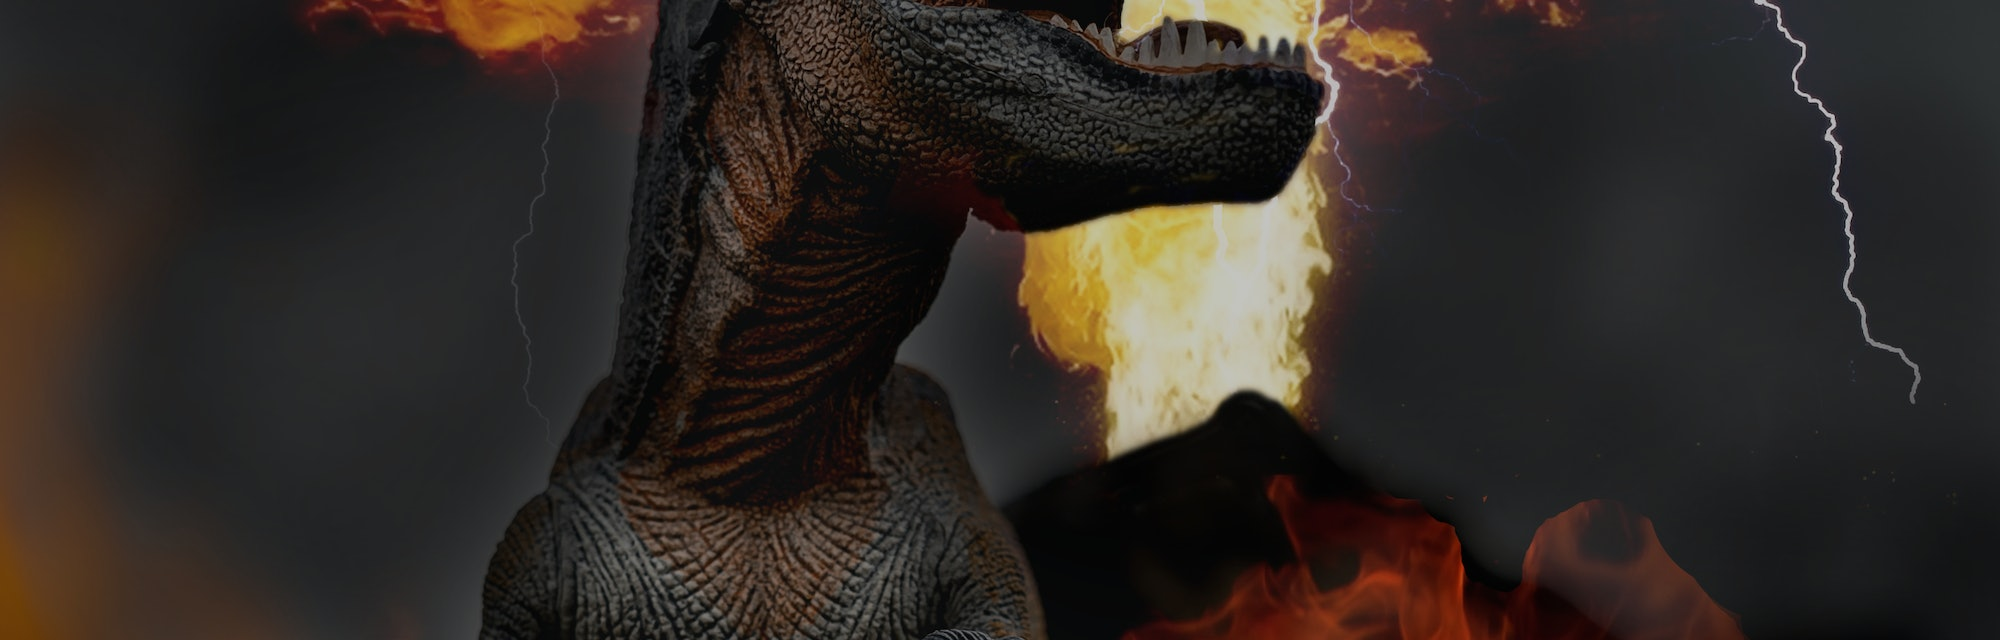 toy photography of Dinosaur facing extinction with meteor shower thunder lighting and volcano erupti...